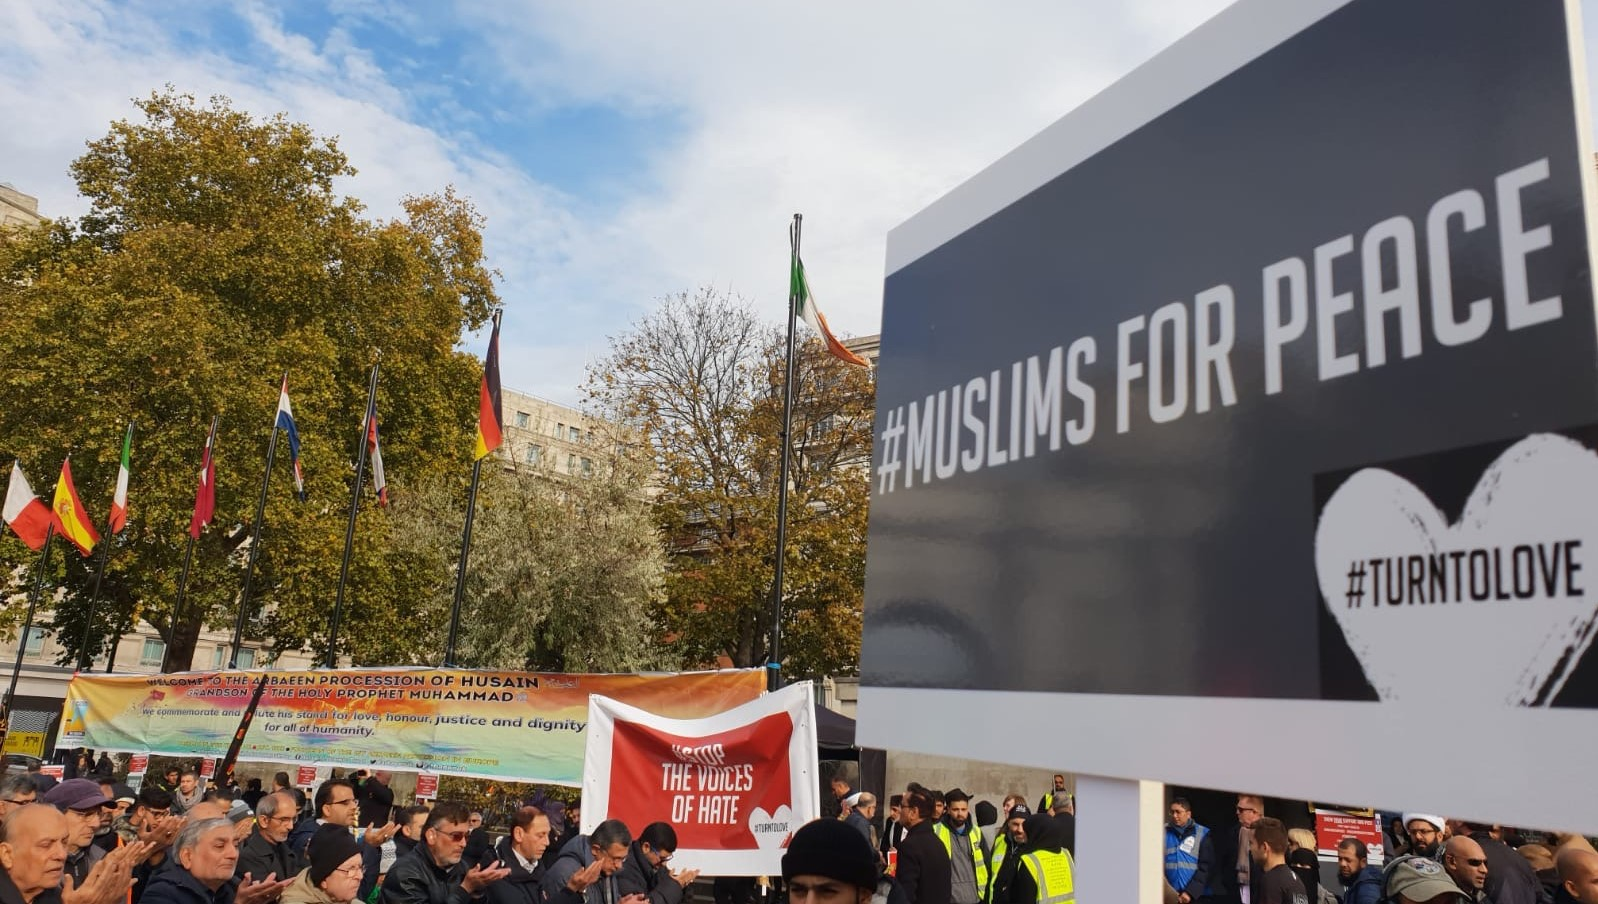 Non Muslim Perspective On The Revolution Of Imam Hussain: London's Muslim Community Organises Europe's Largest